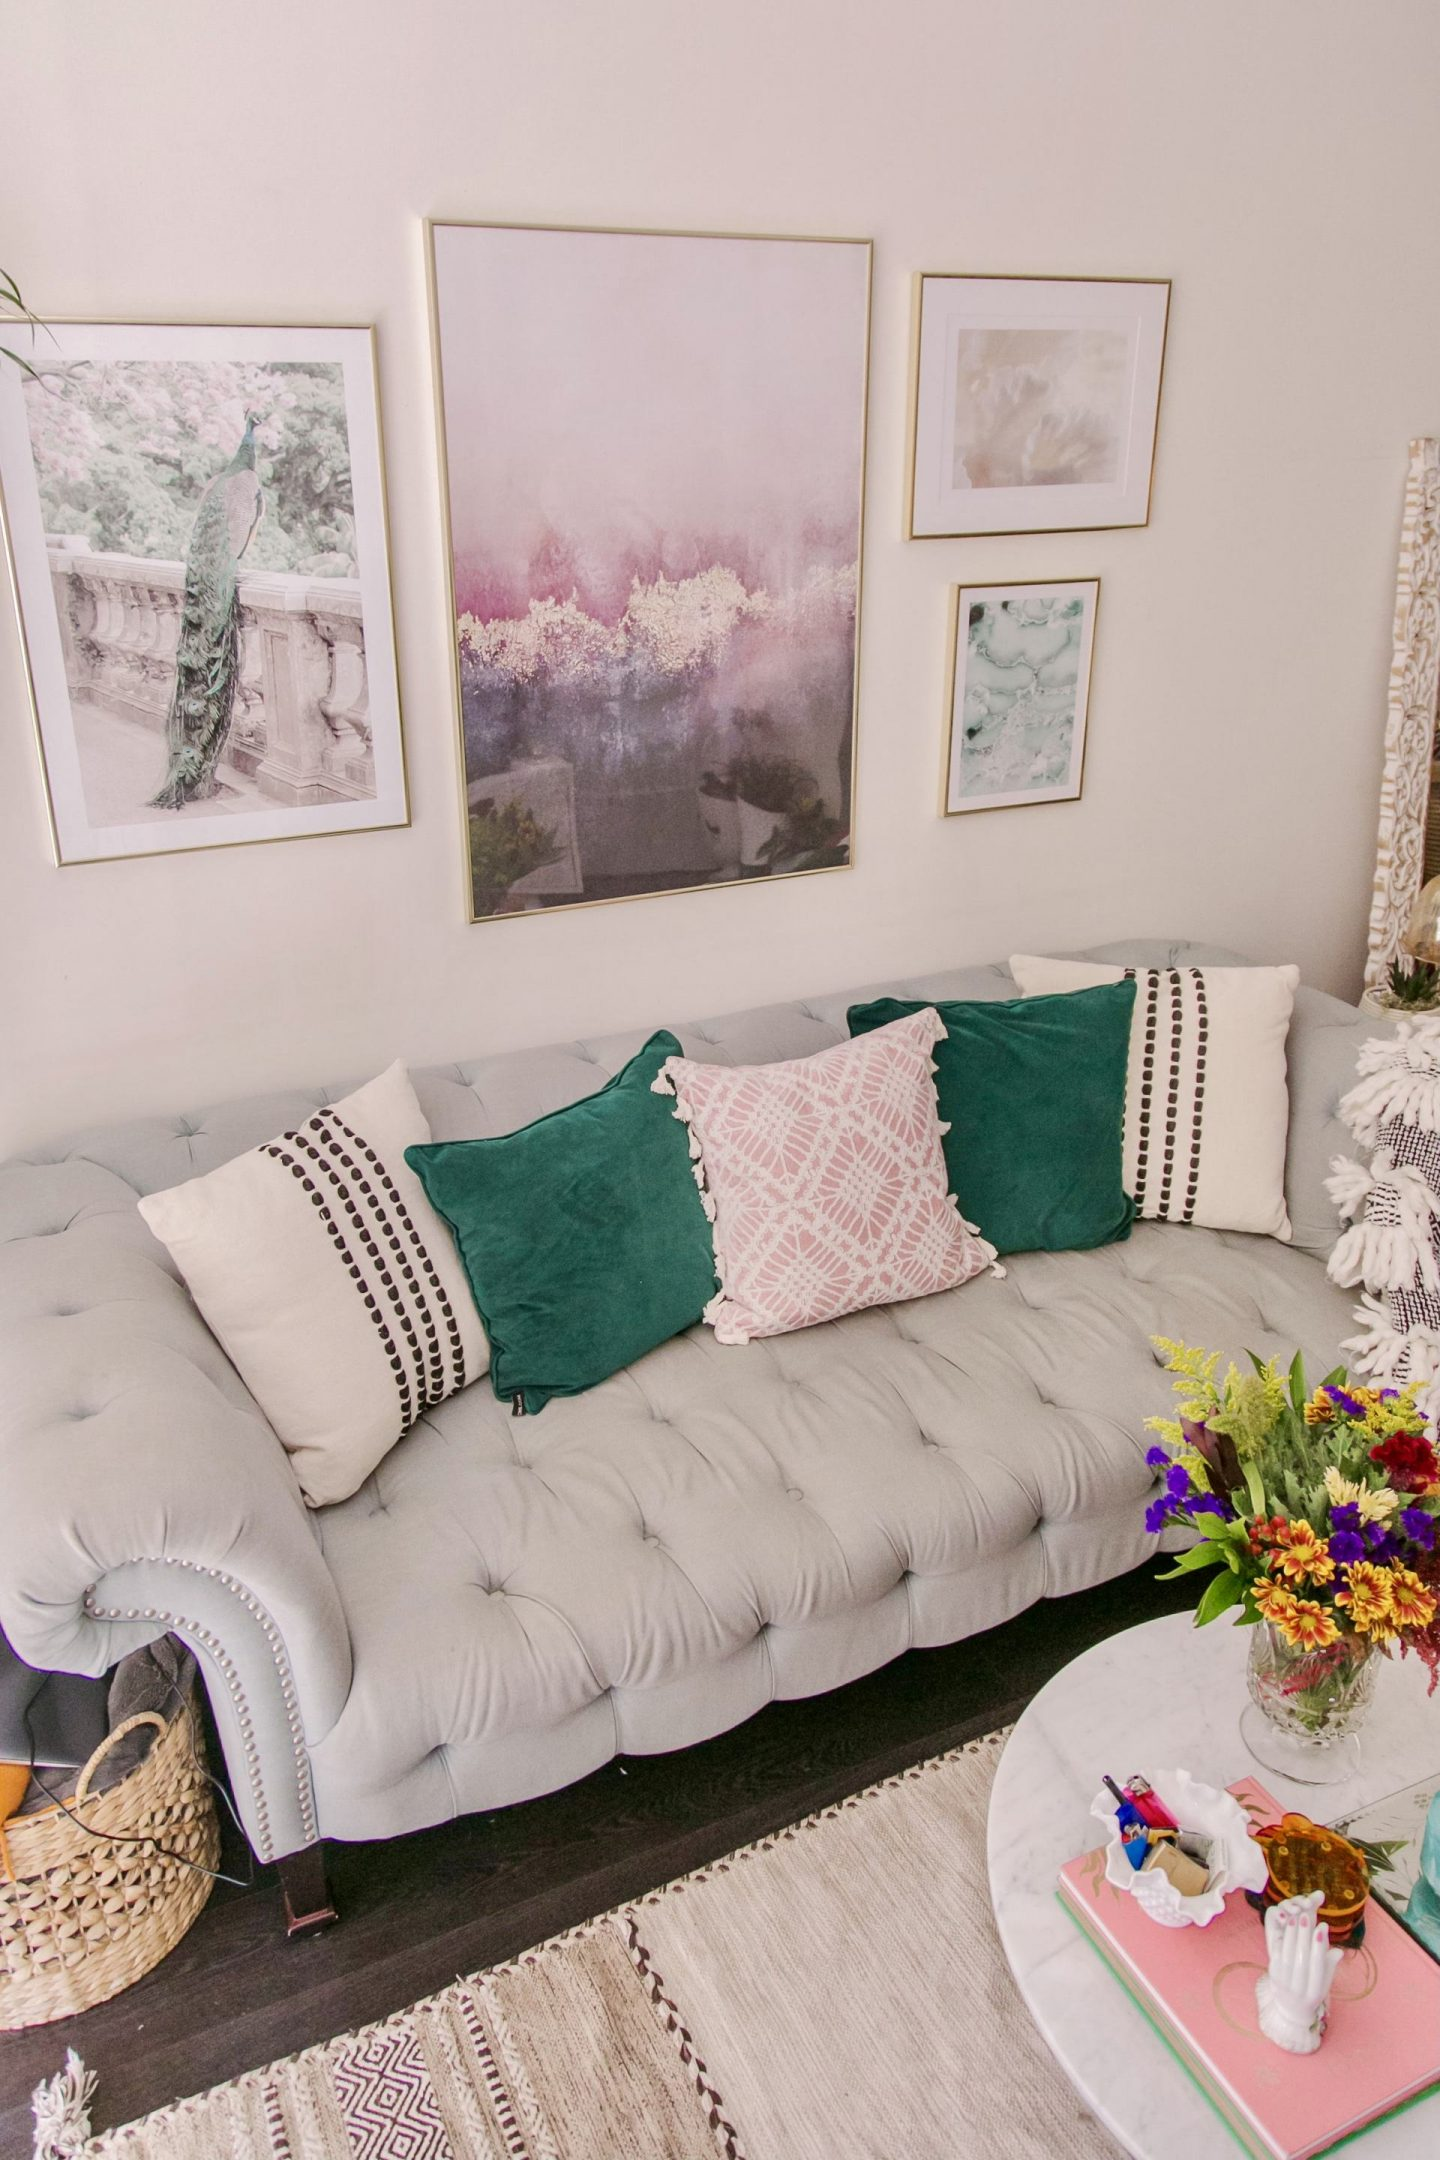 Quick and easy ways to update your living room while being on a budget